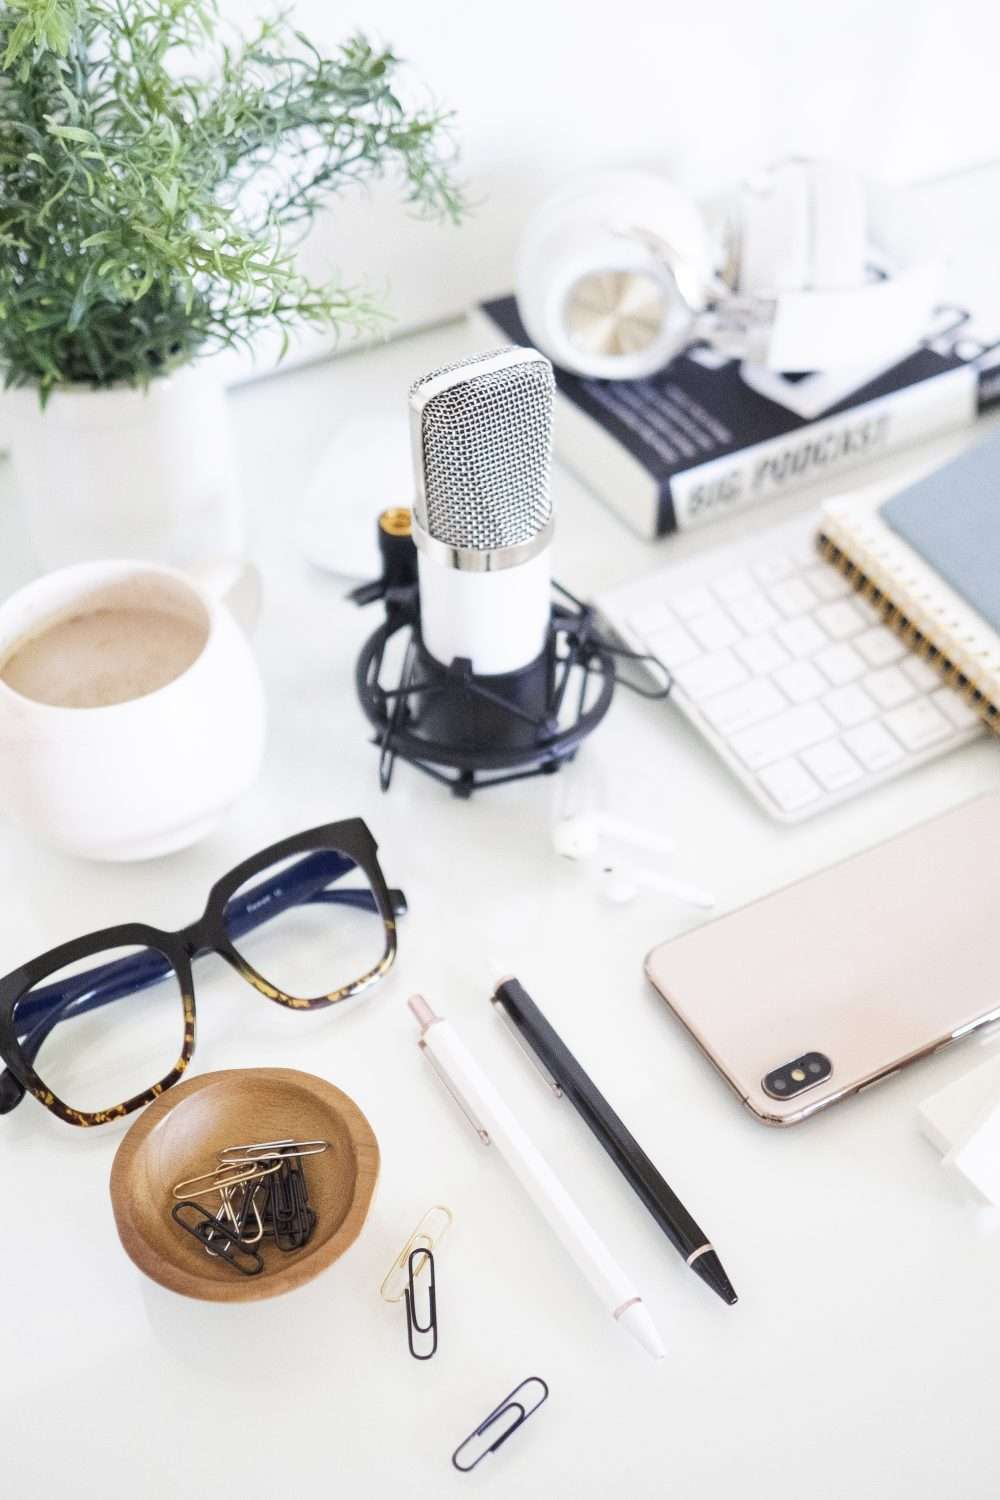 Visual Branding for your Podcast is vital! - Molly Hicks, Brand Strategist + Designer